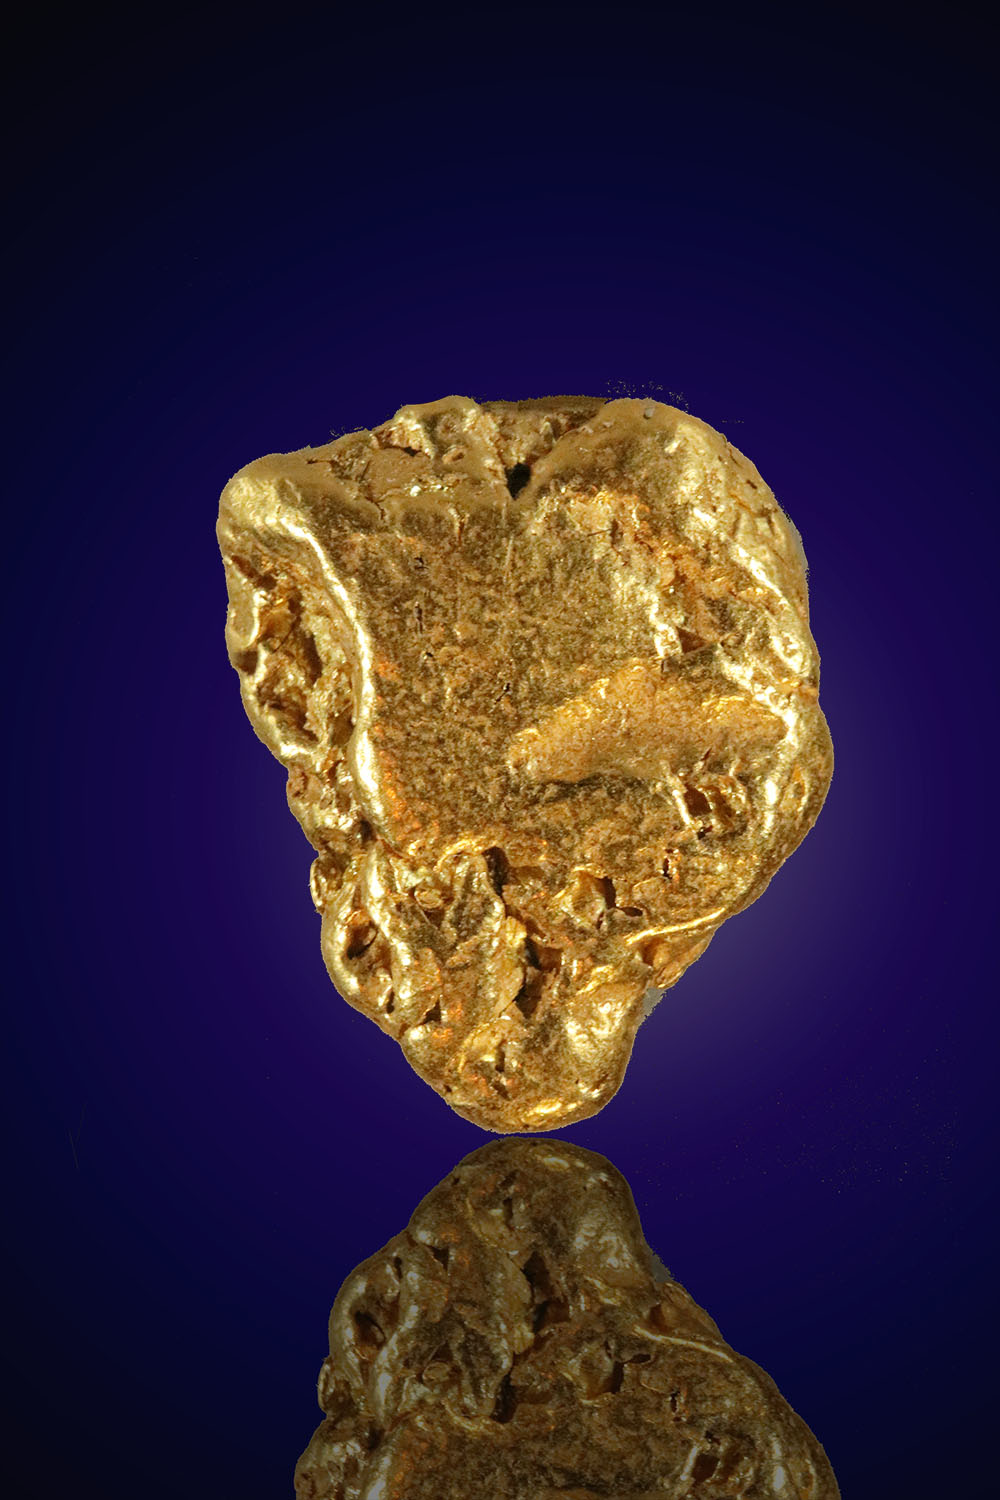 Triangle Textured Gold Nugget From Alaska